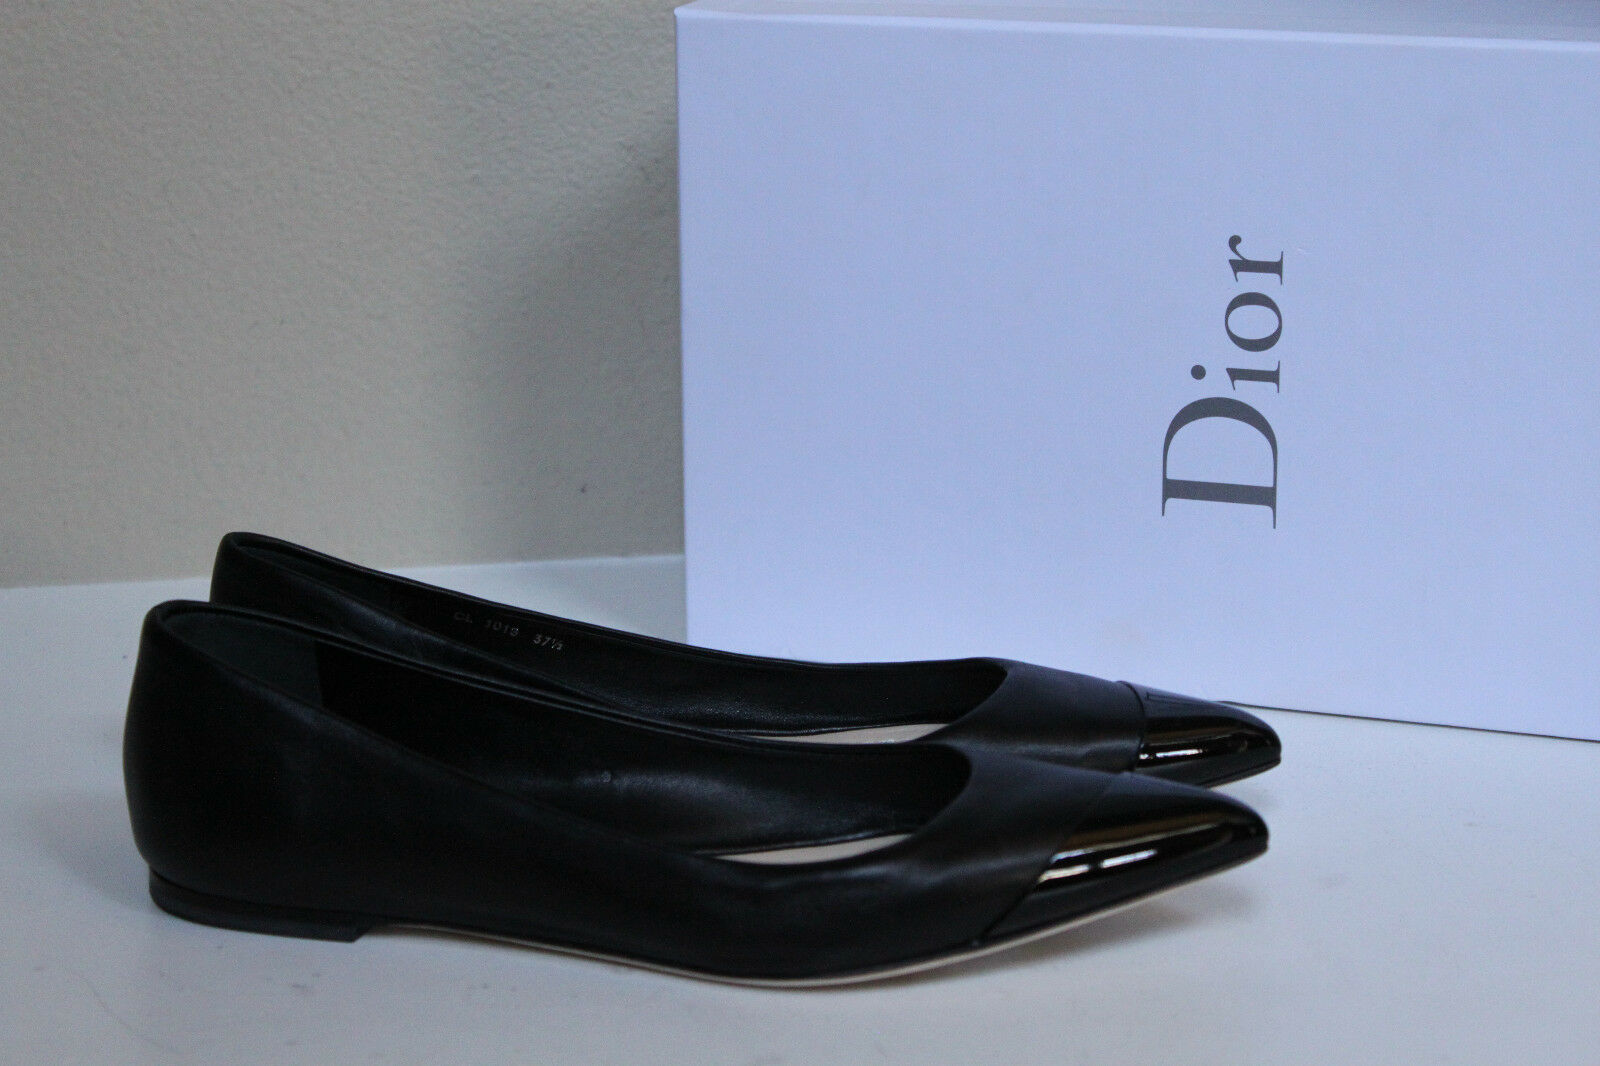 New Christian Dior Black Leather Metal Pointed Toe Toe Toe Ballet Flat shoes sz 7   37.5 f56747